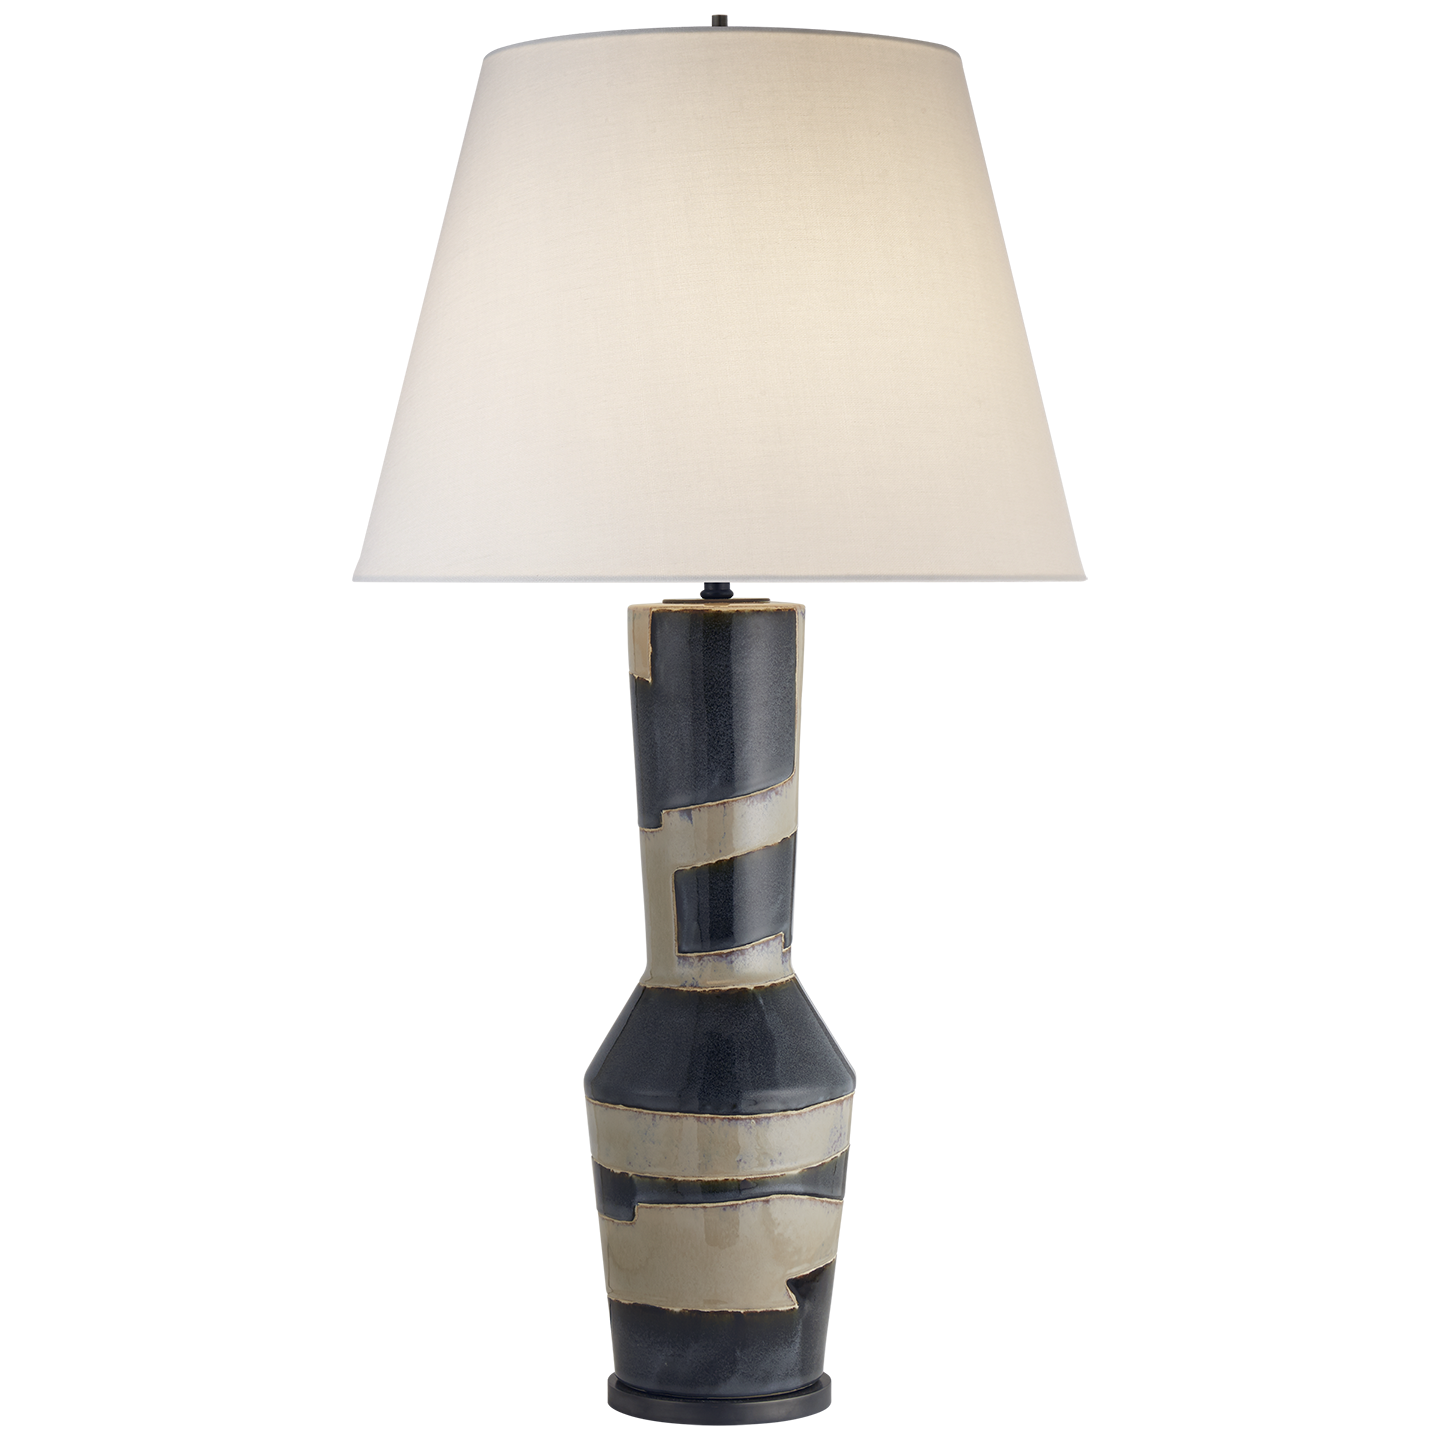 Alta table lamp visual comfort luxe home philadelphia alta table lamp visual comfort geotapseo Gallery